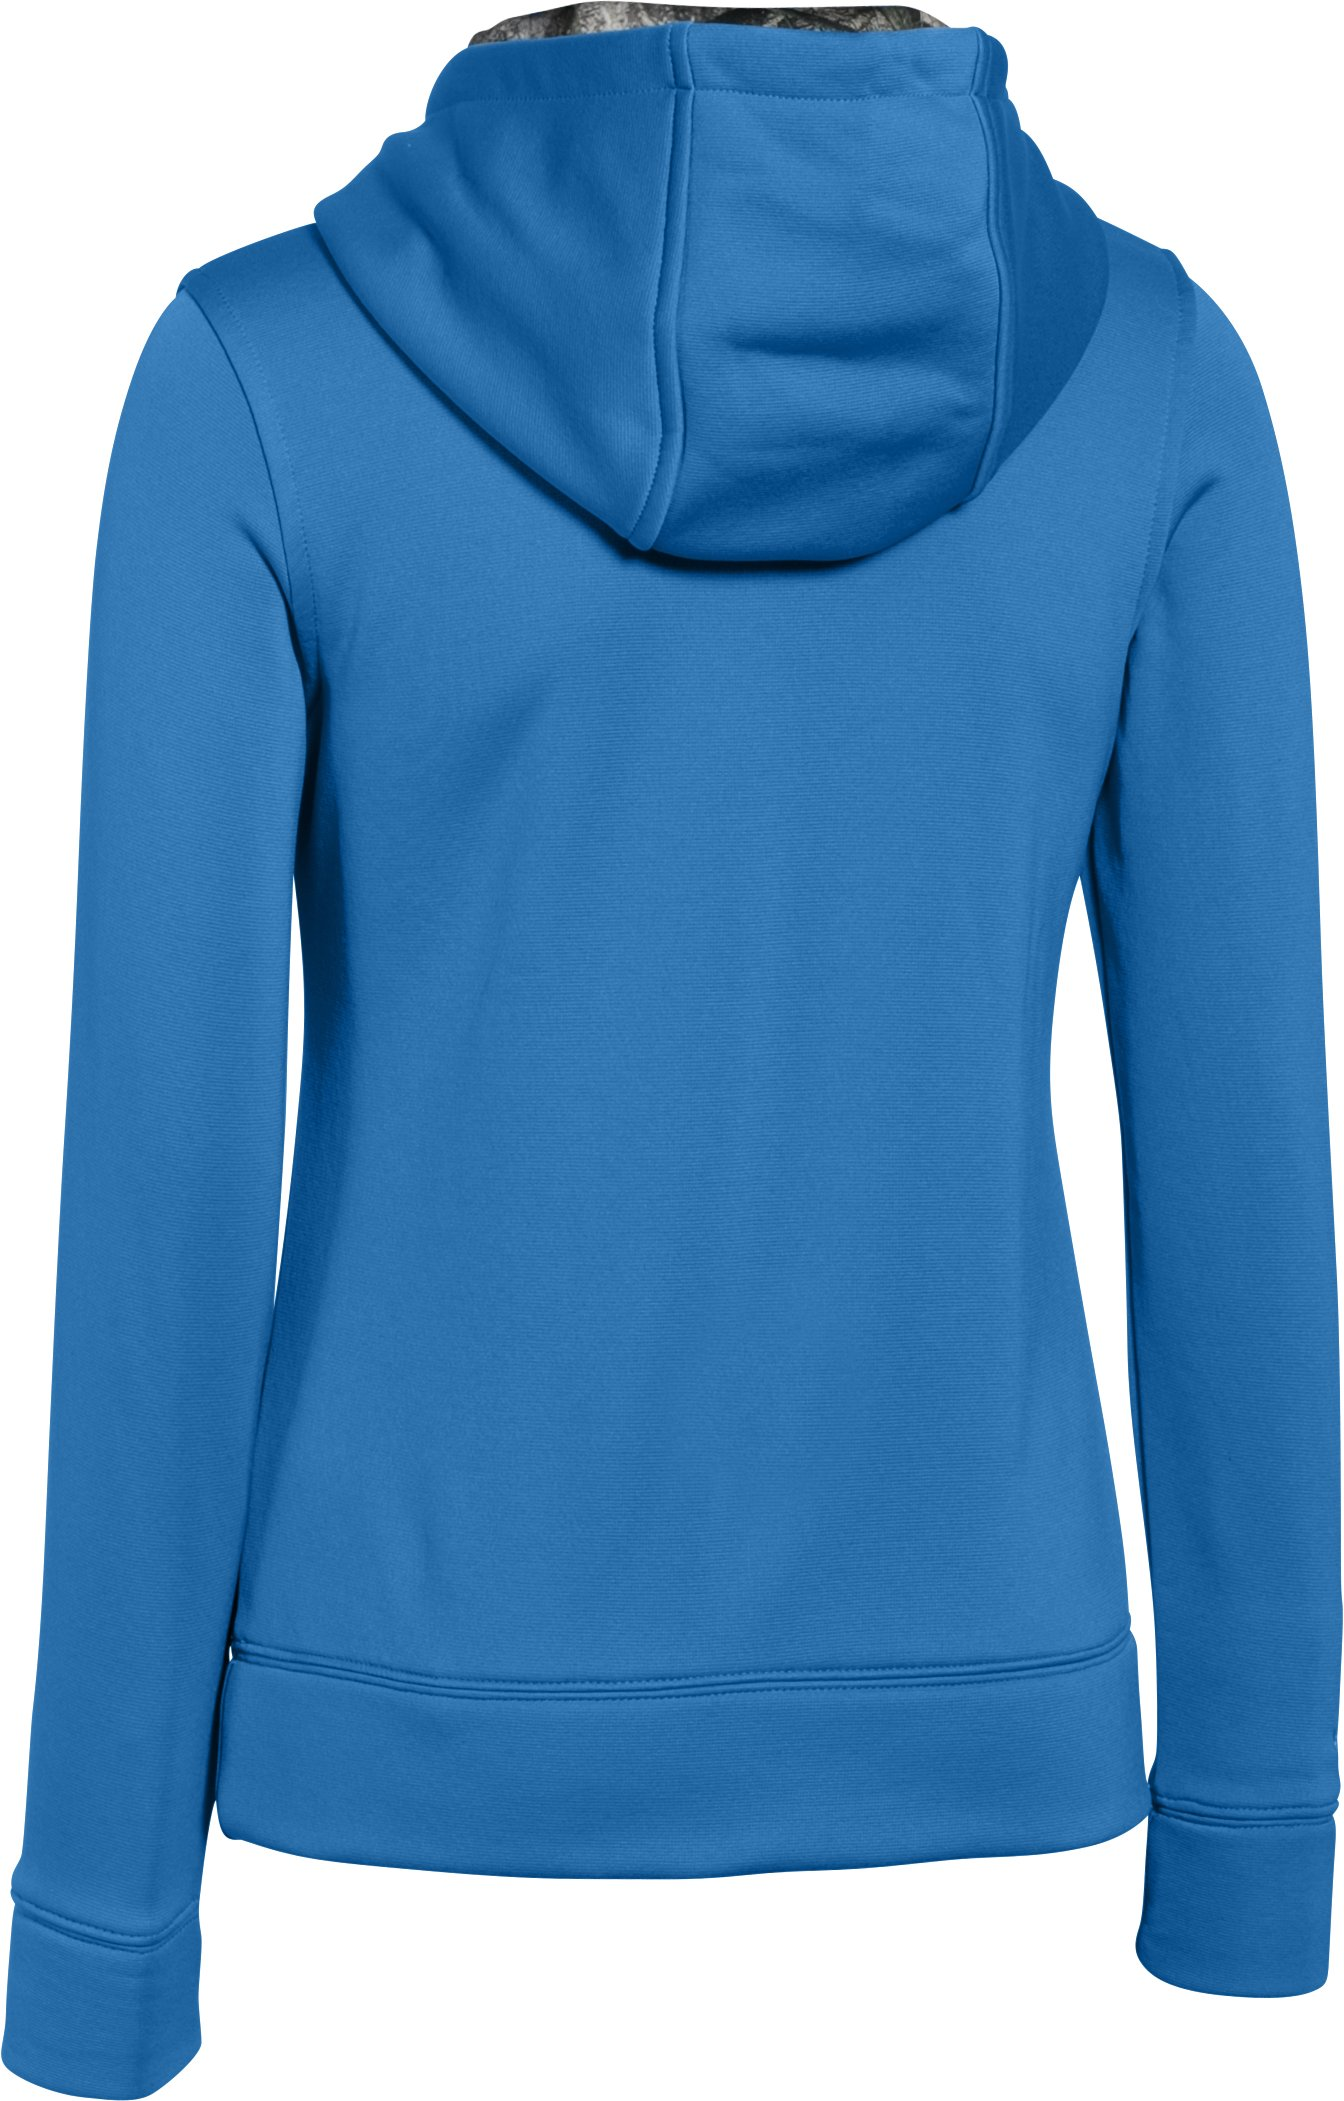 Girls' UA Caliber Hoodie, PICASSO BLUE, undefined